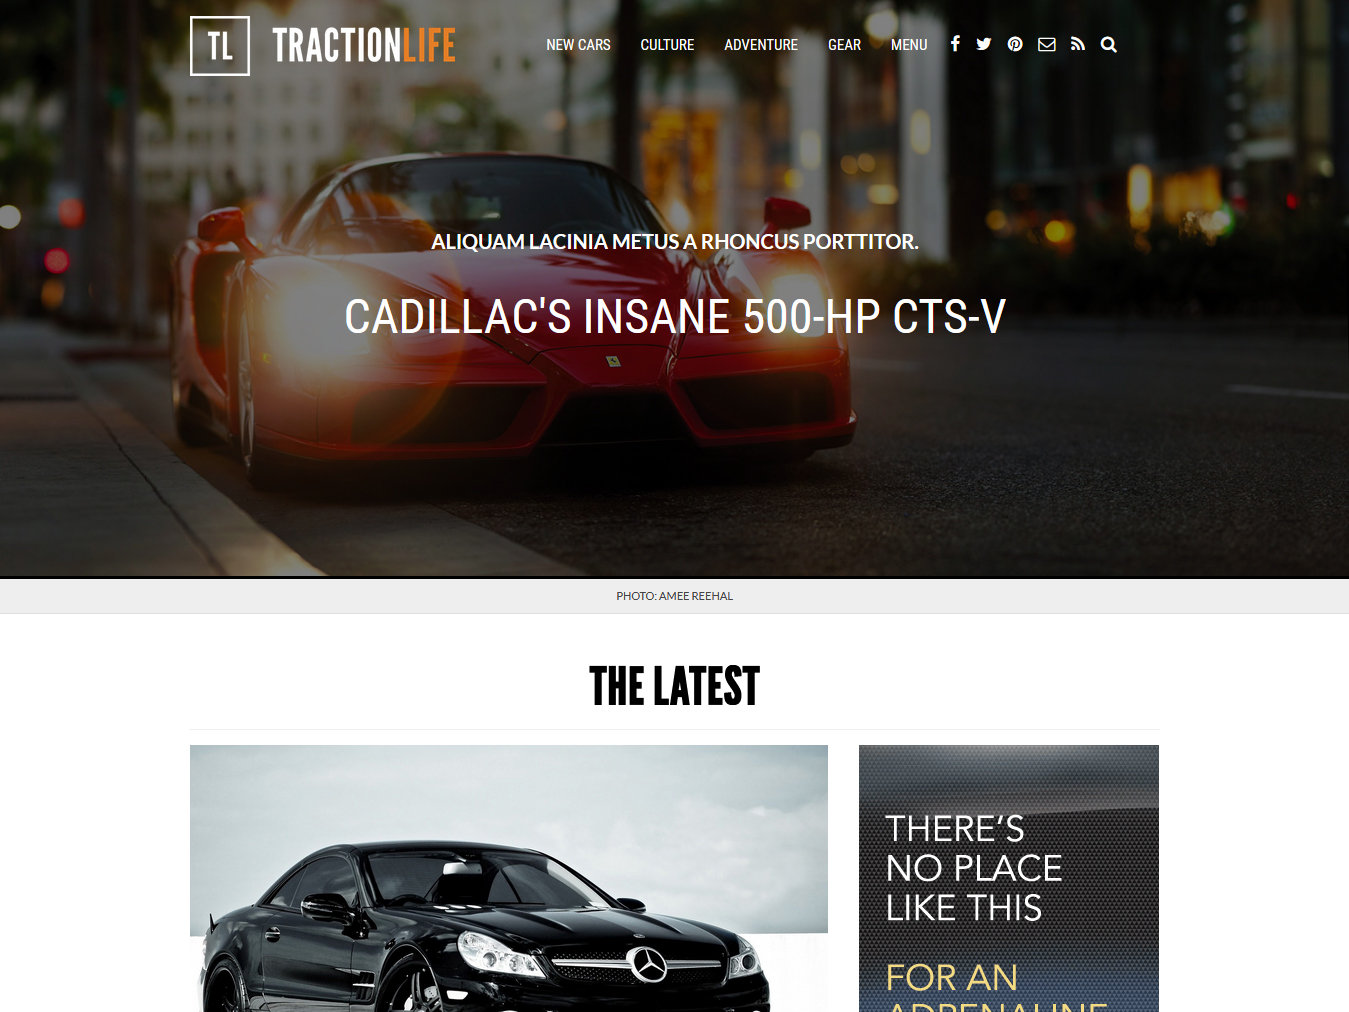 Custom website design for Traction Life